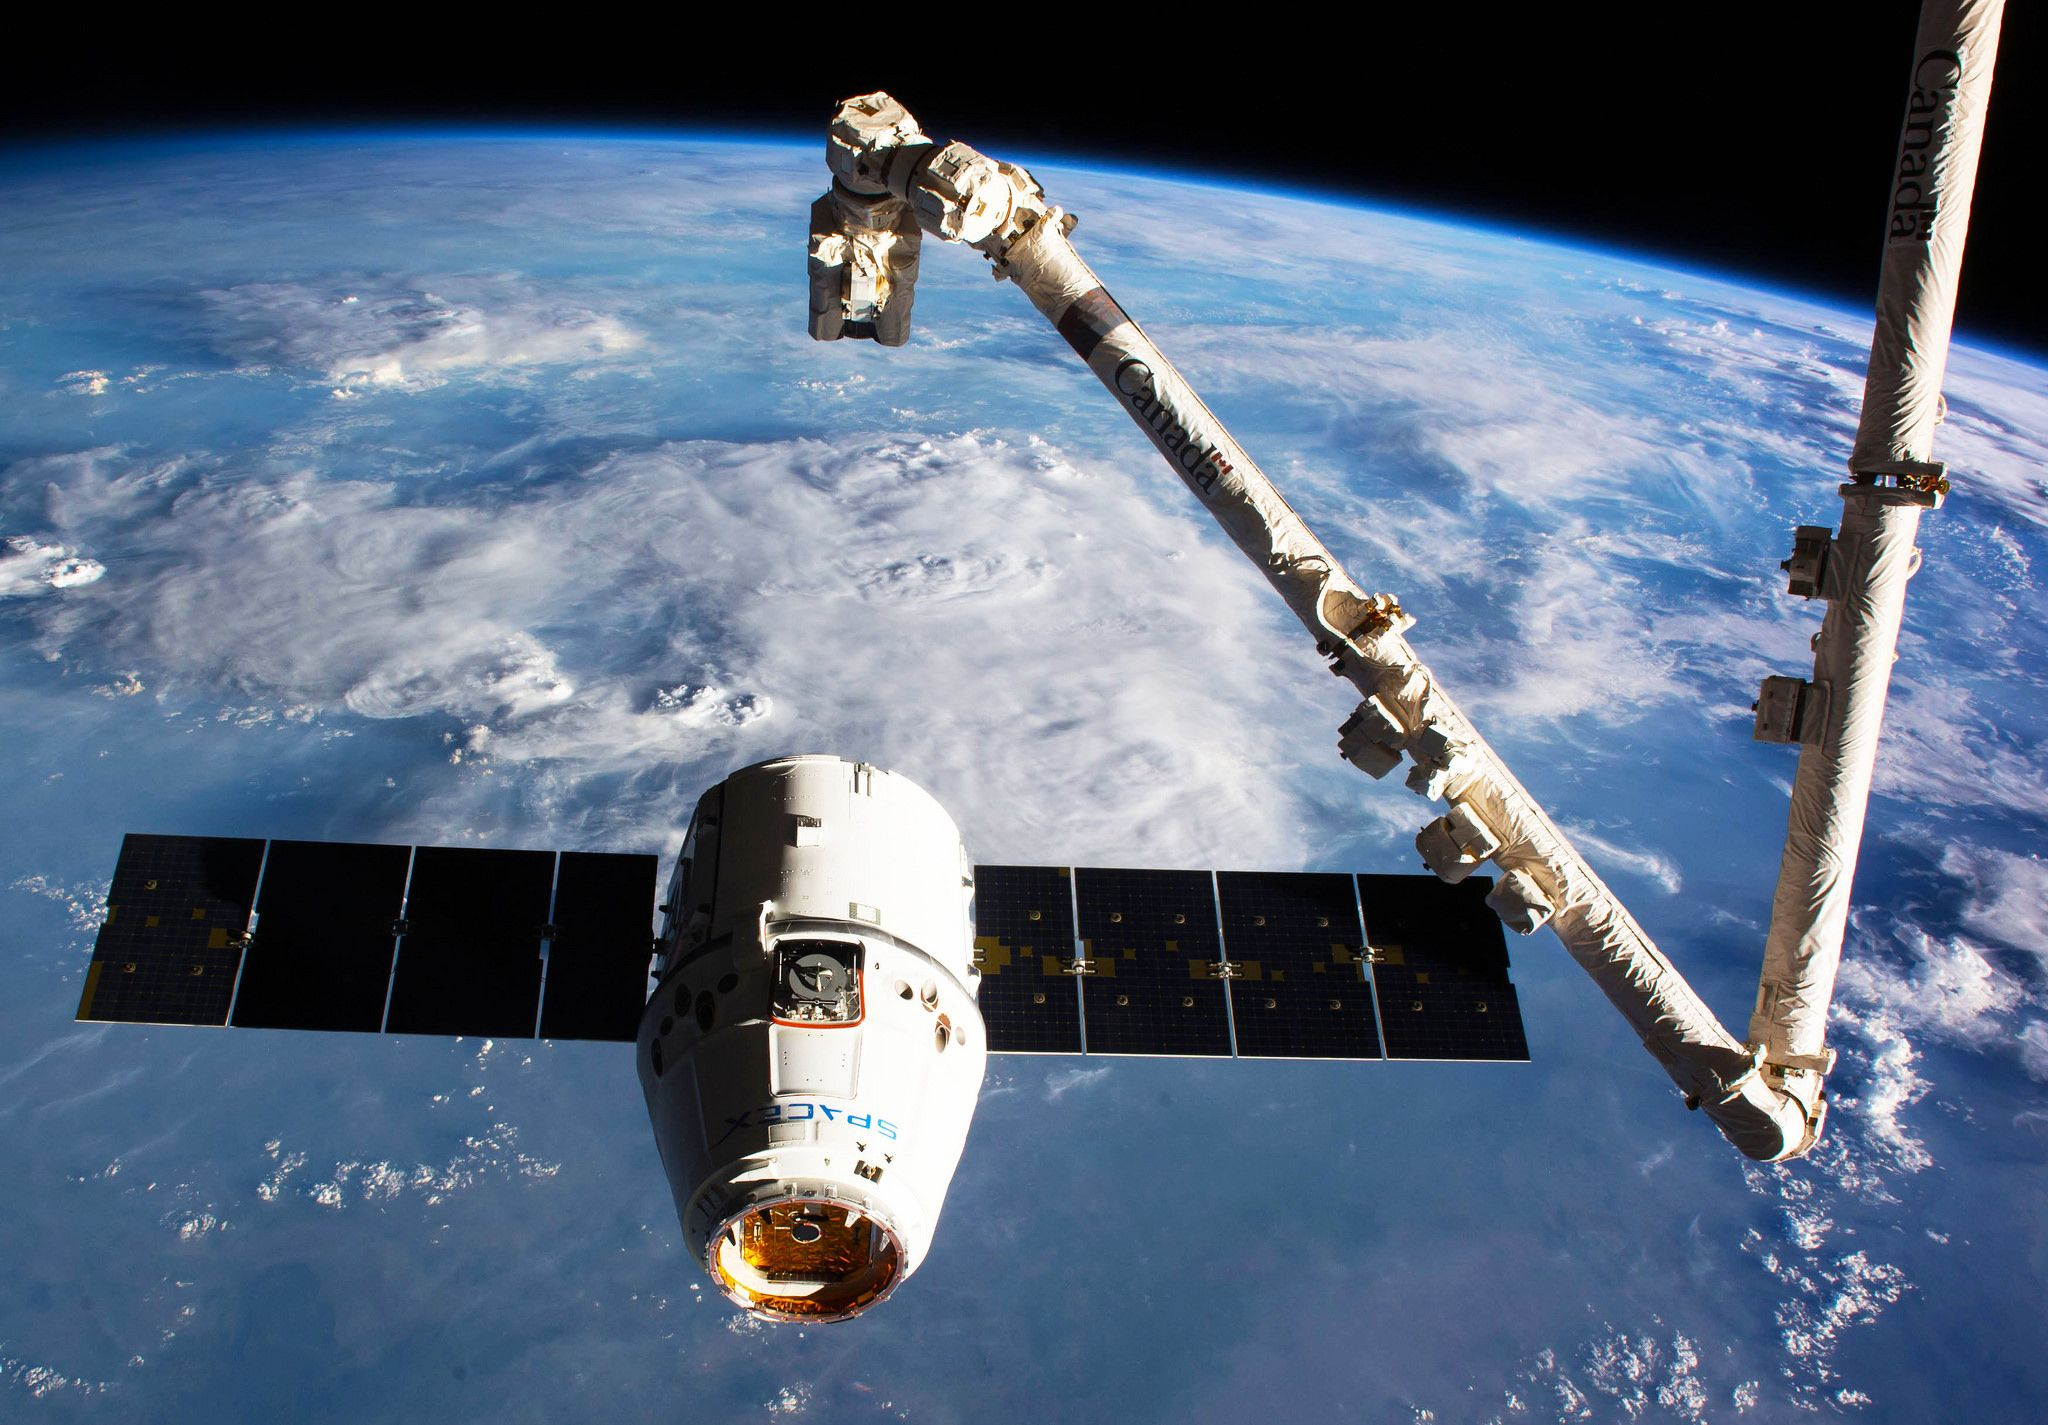 1_15_SpaceX Dragon